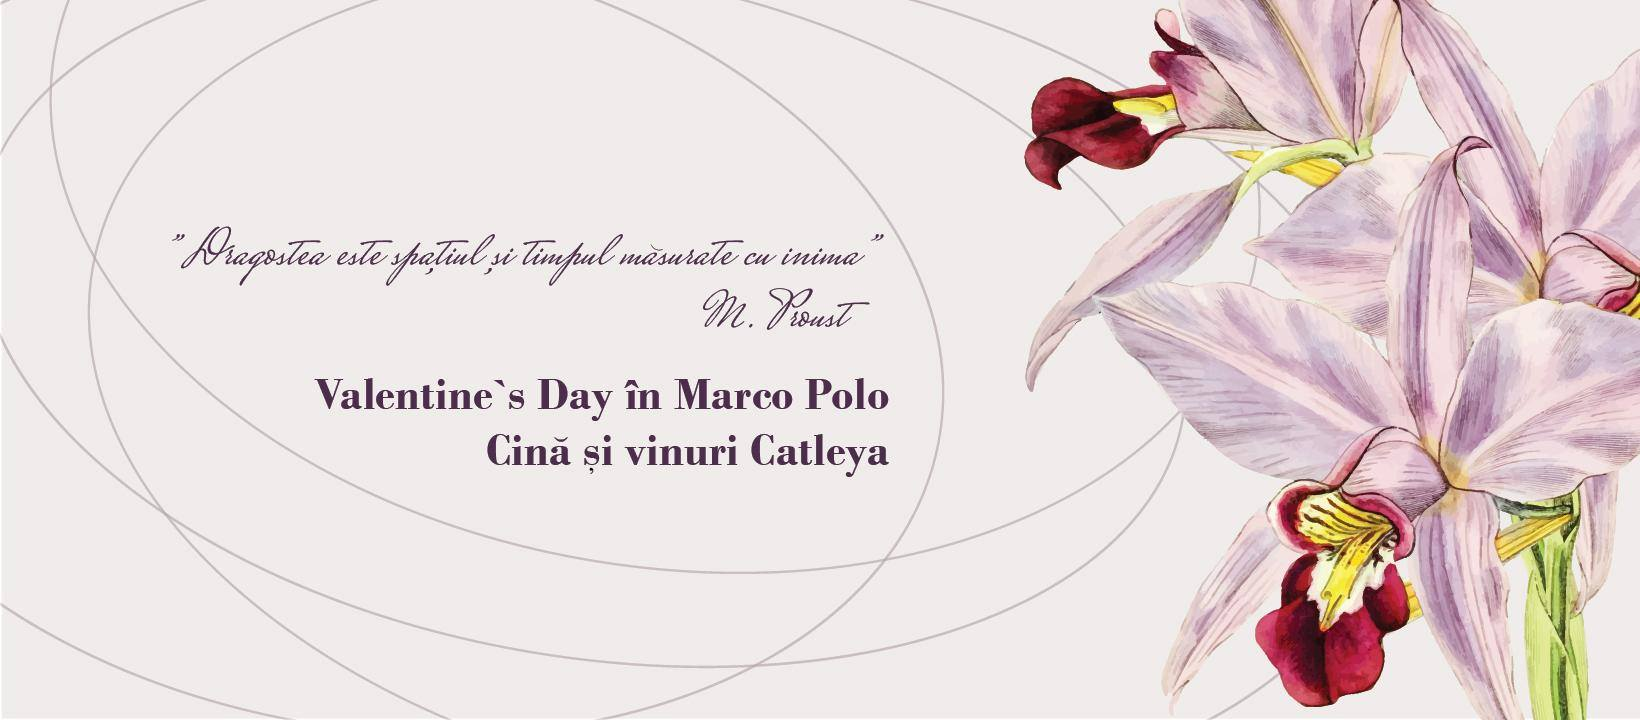 Valentine's Day @ Marco Polo